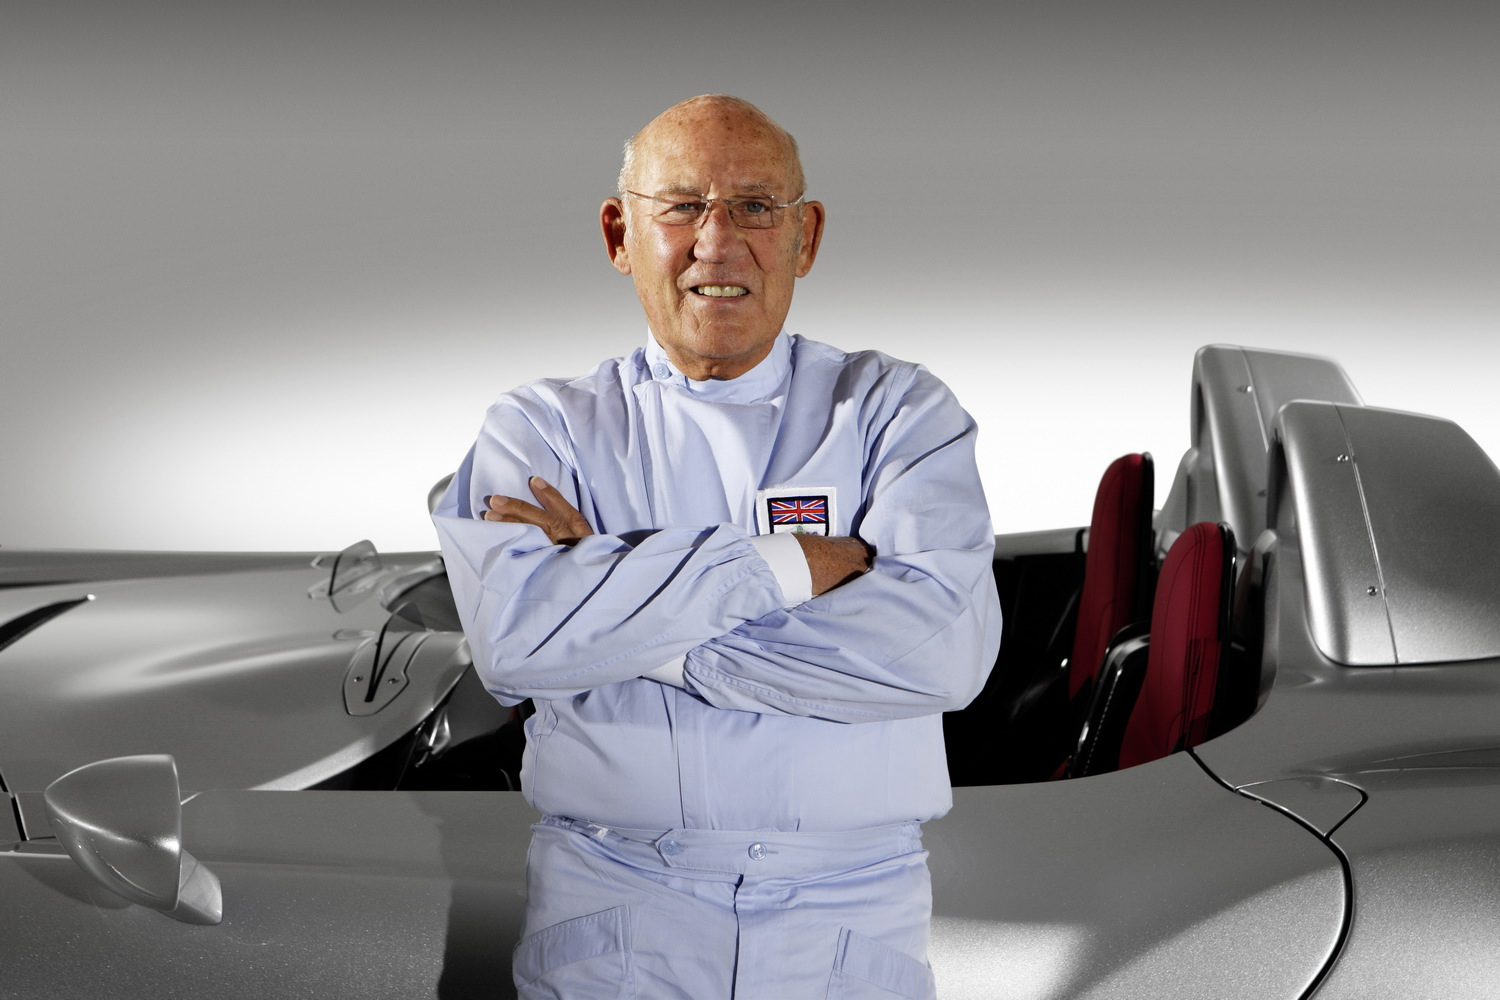 The 88-year old son of father Alfred Moss and mother Aileen Moss, 176 cm tall Stirling Moss in 2018 photo